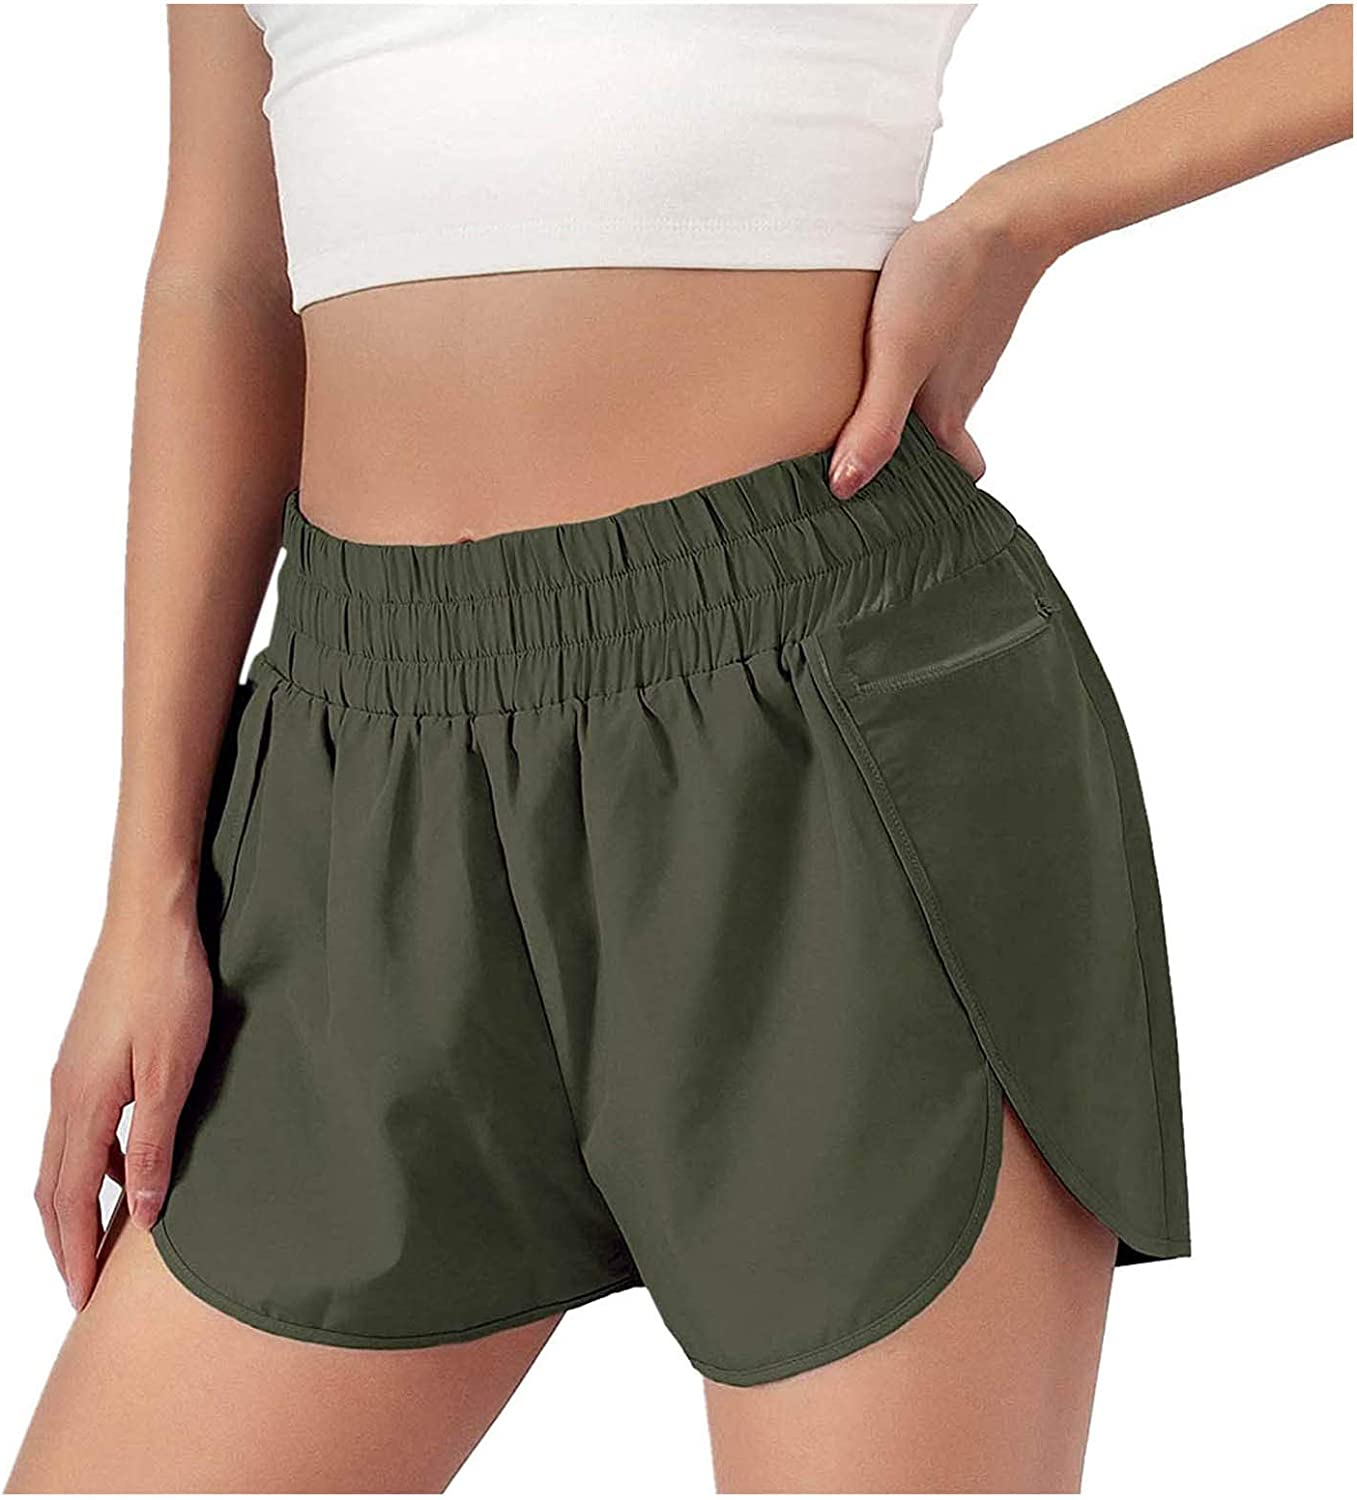 COMVALUE Womens Shorts for Summer,Women's Solid Elastic Waist Casual Comfy Beach Sports Shorts with Pocket